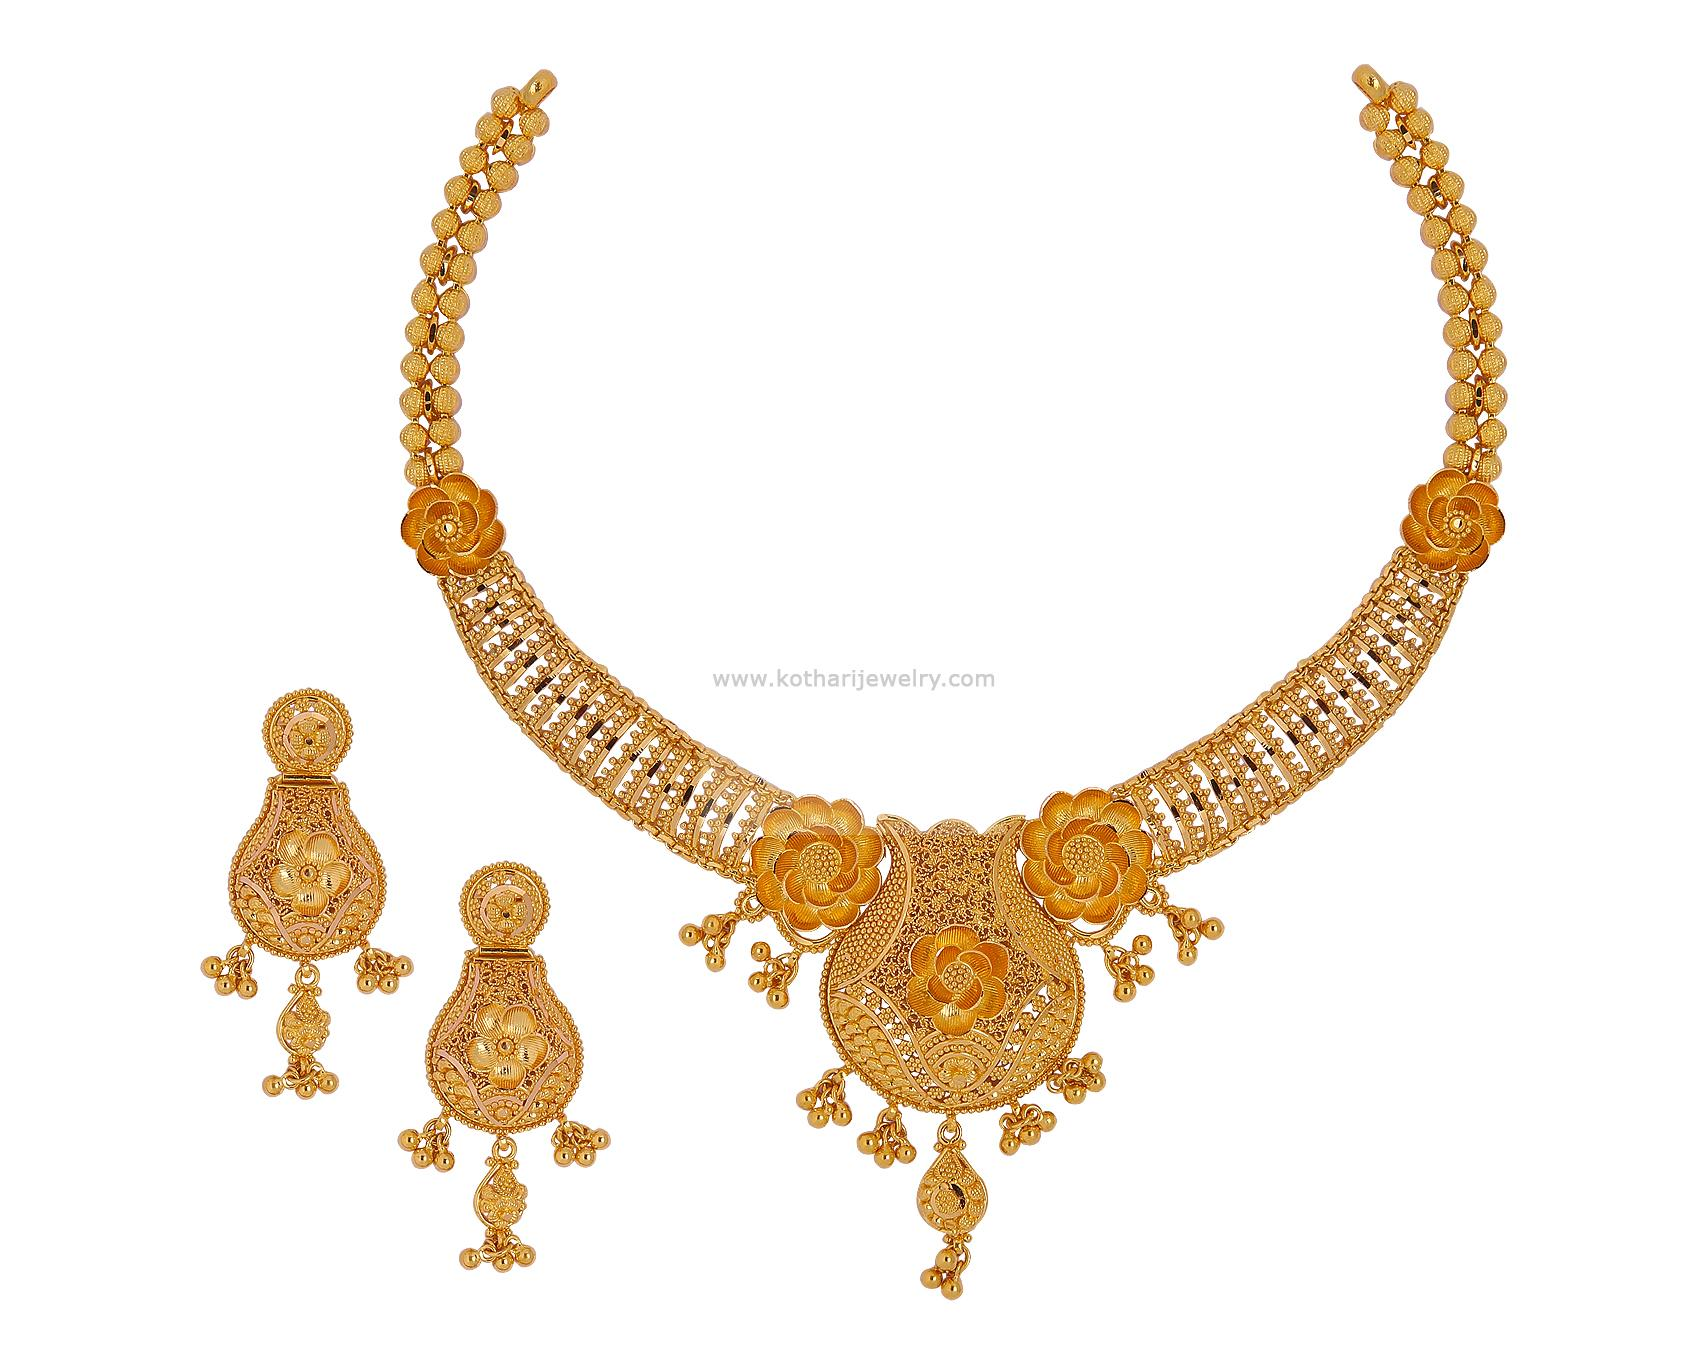 Gold Necklace - 22Kt Uncut Diamond Necklace Set, 22Kt Uncut Diamond ...